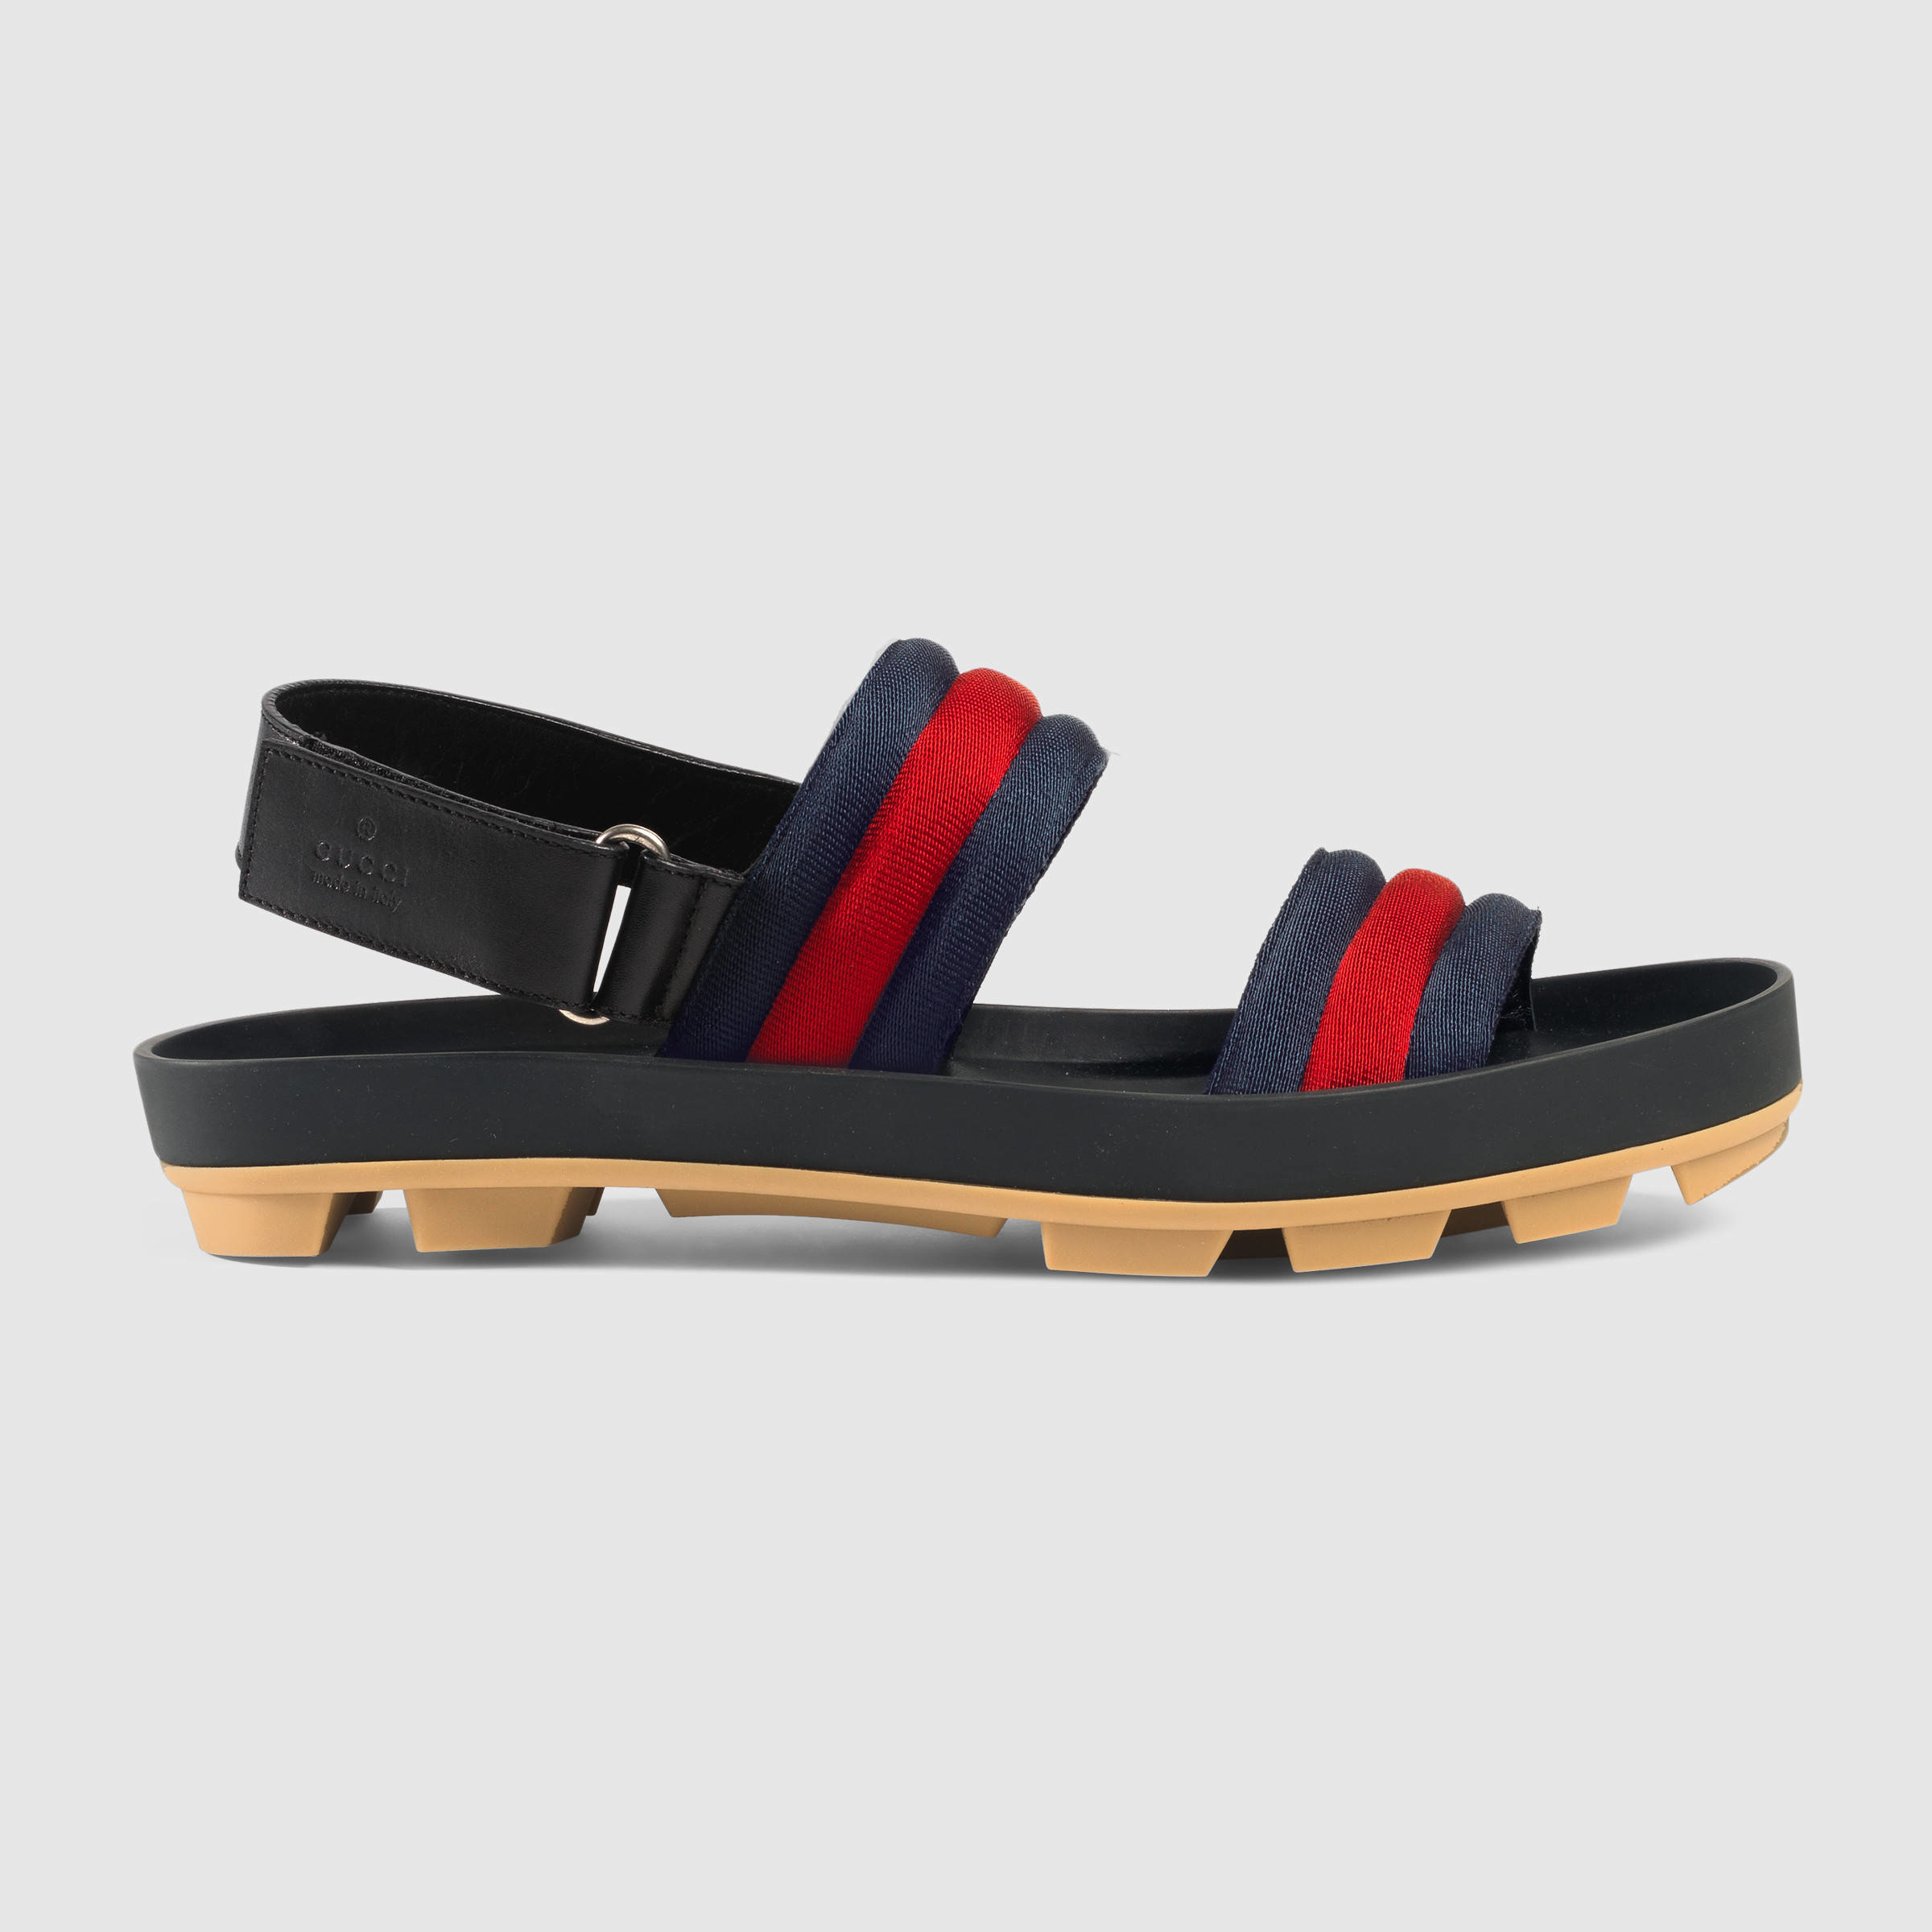 a09fb6ea58b1 Gucci Leather And Web Sandal for Men - Lyst